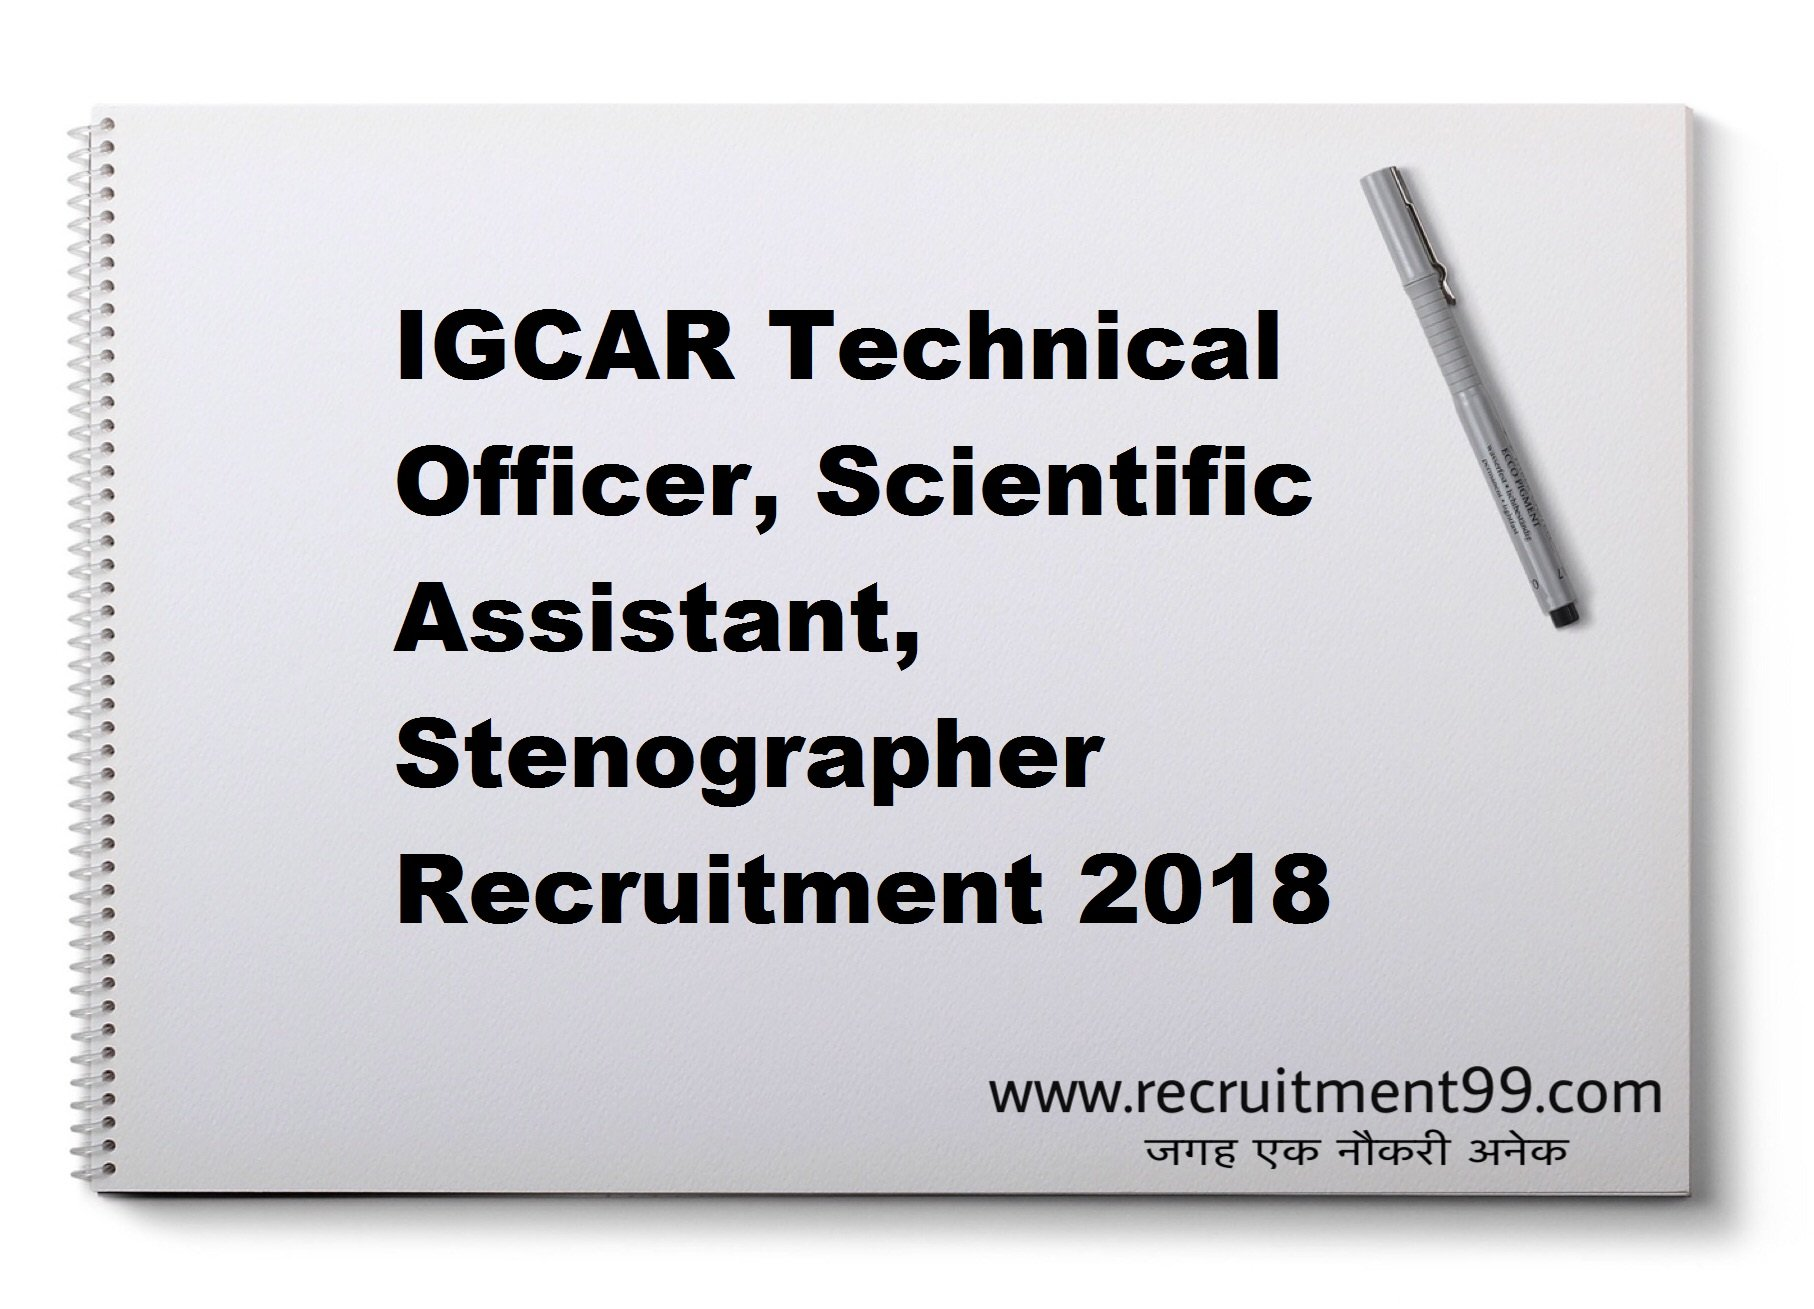 IGCAR Technical Officer Scientific Assistant Stenographer Recruitment Admit Card Result 2018